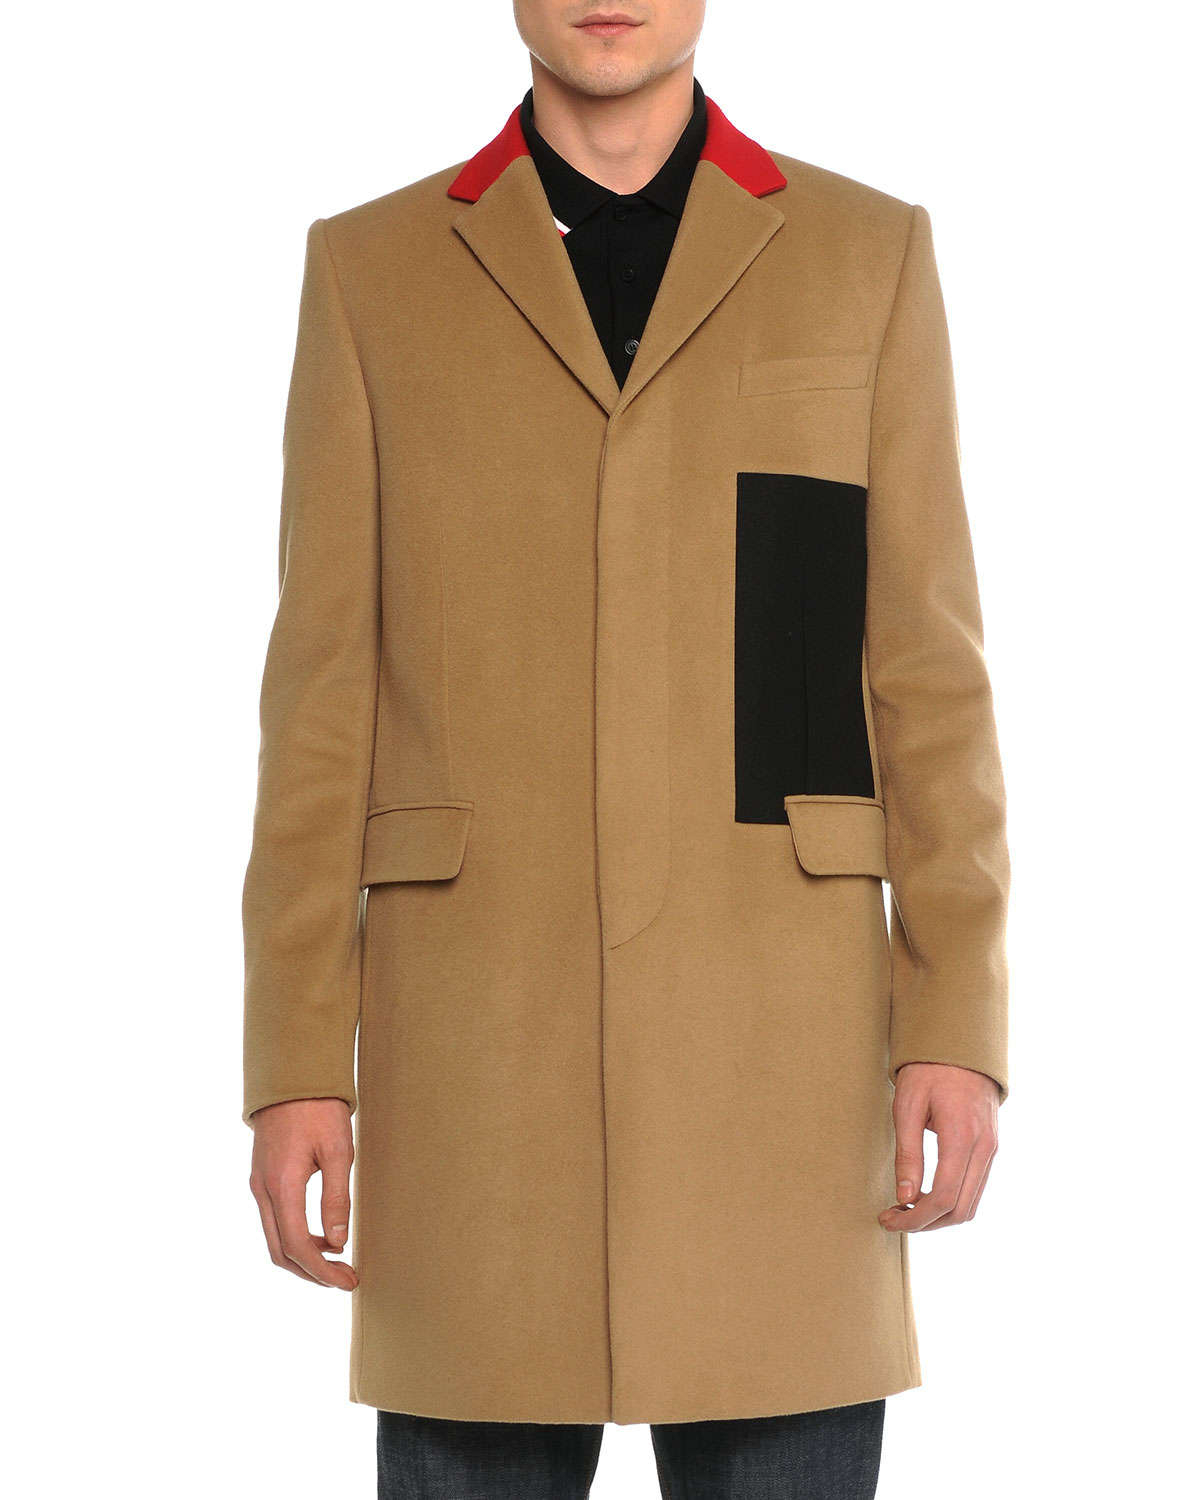 Givenchy Color Blocked Wool Cashmere Topcoat In Natural